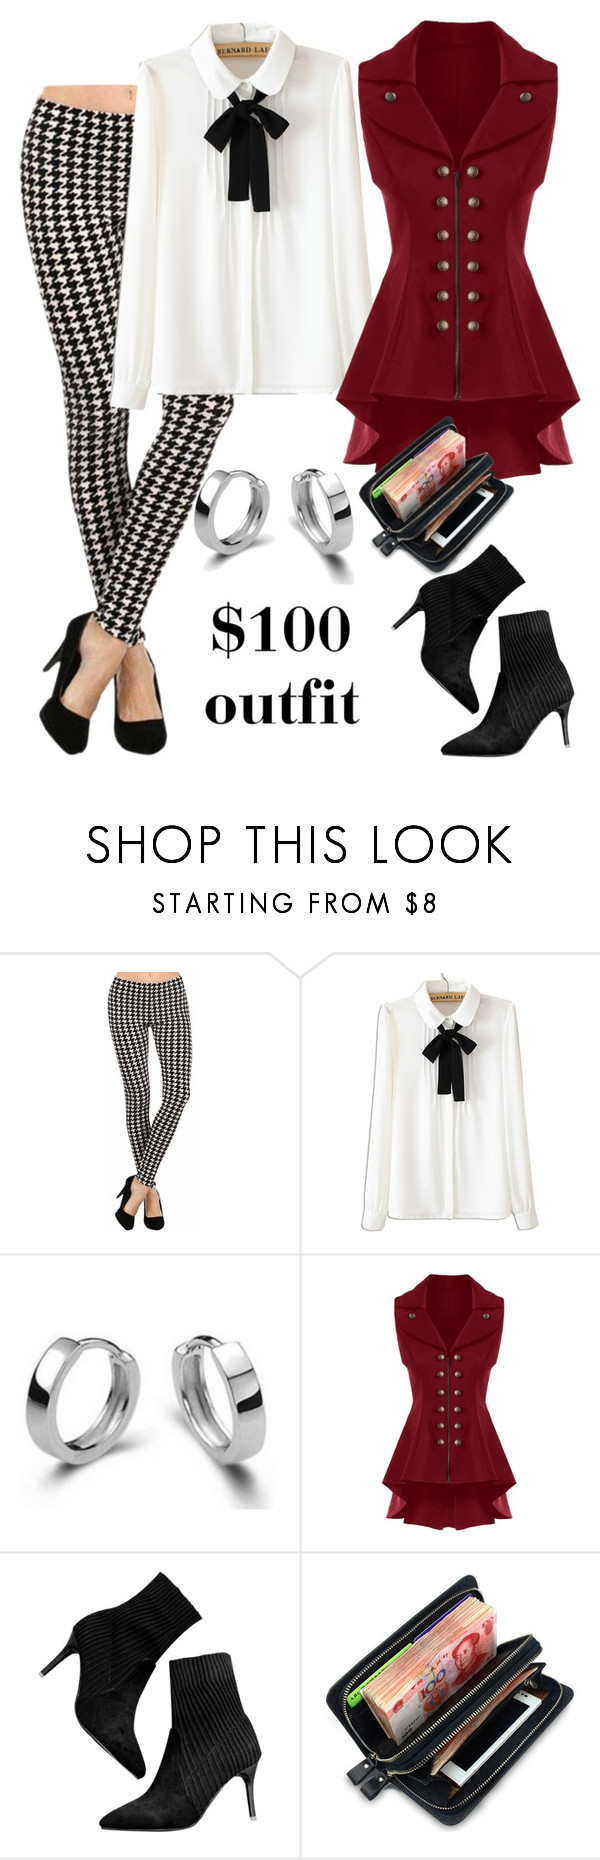 """""""Frugal Fashionista"""" by dundiddit ❤ liked on Polyvore featuring WithChic"""